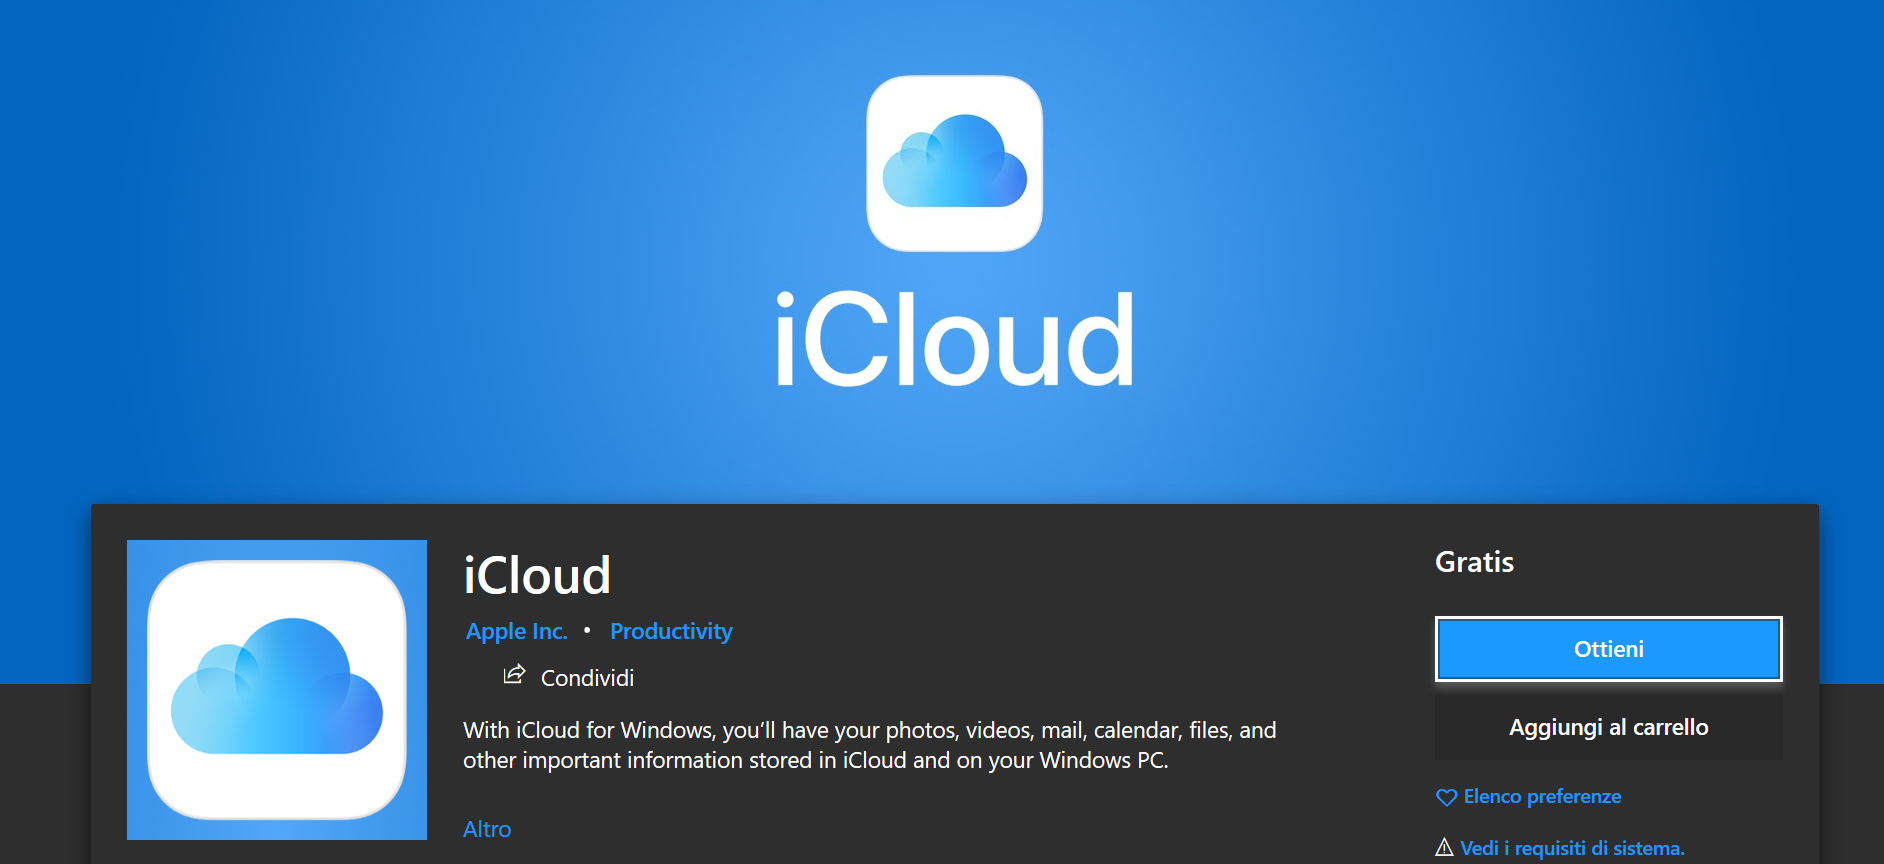 iCloud, disponibile l'app desktop per Windows 10 thumbnail